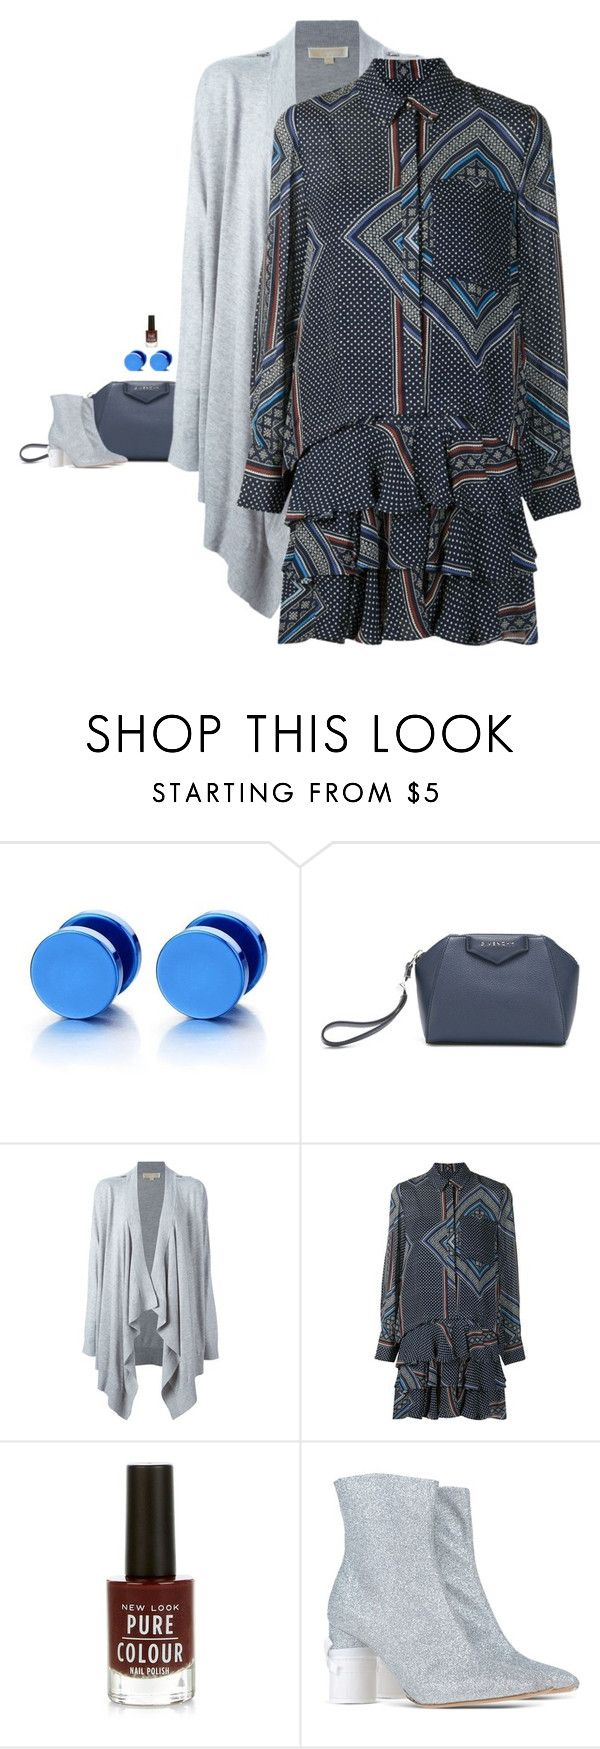 """""""Derek Lam 10 Crosby - Scarf Print Combo Shirt Dress Style"""" by twinklebluegem ❤ liked on Polyvore featuring Givenchy, MICHAEL Michael Kors, 10 Crosby Derek Lam and Maison Margiela"""